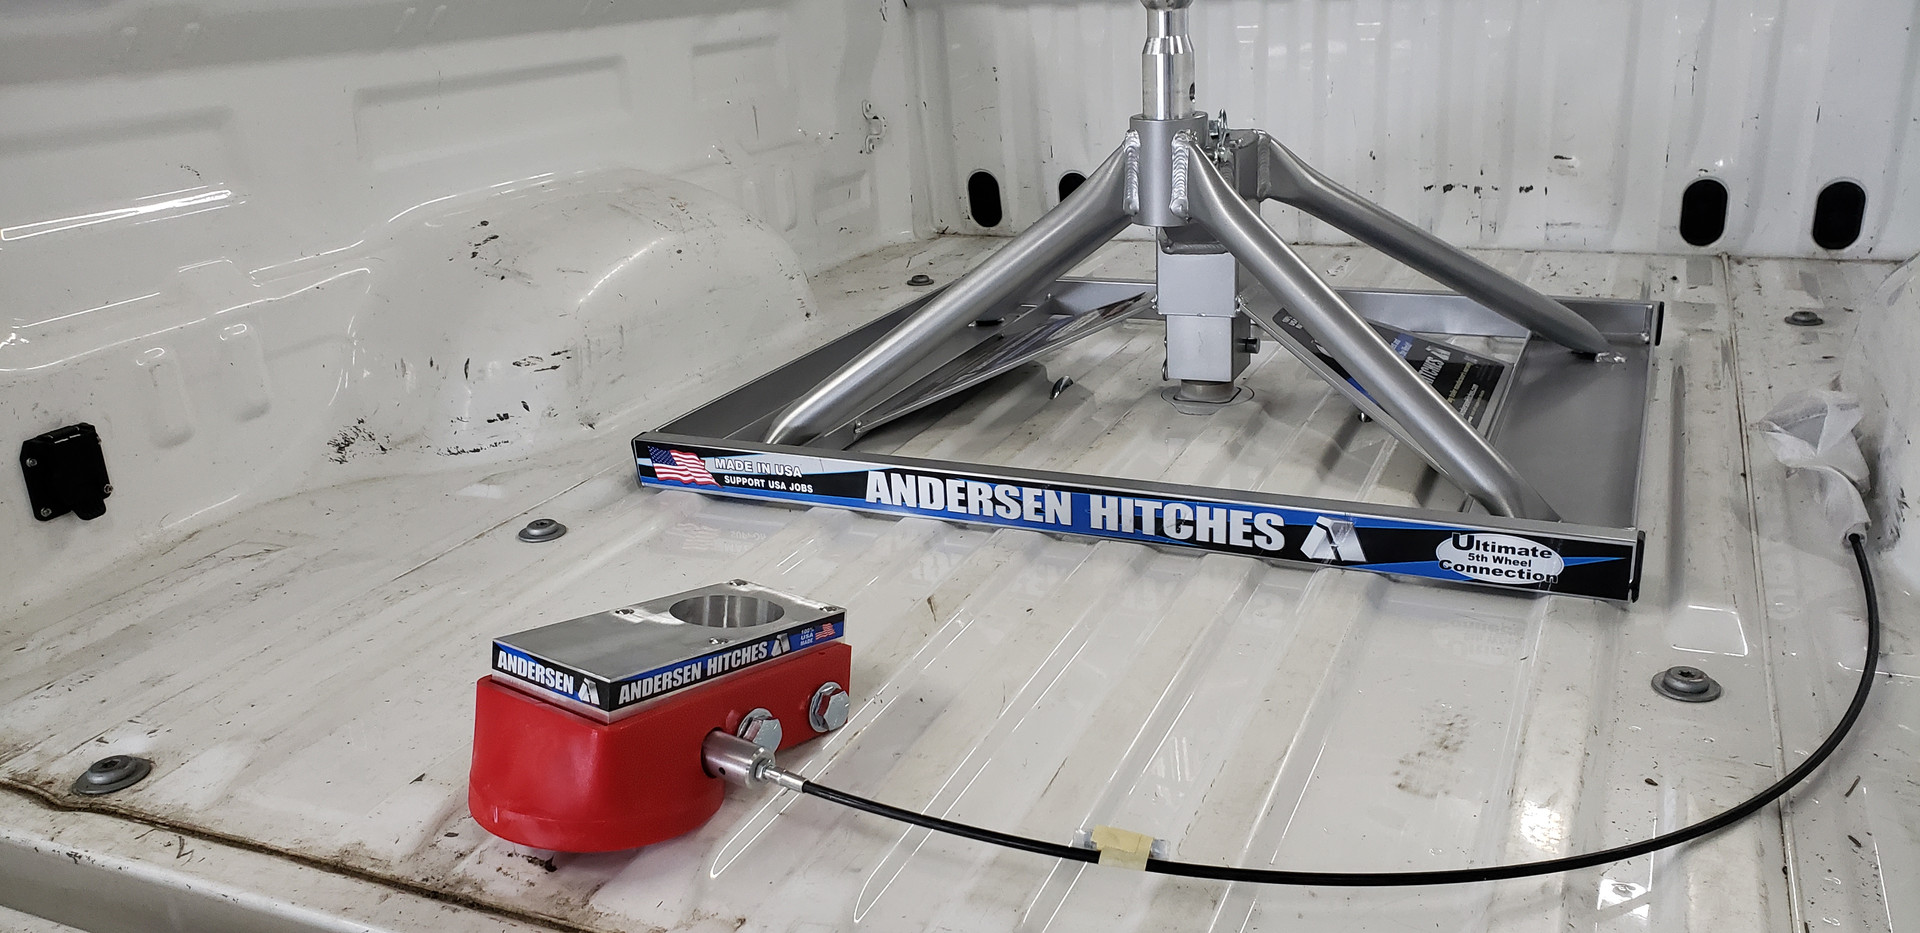 Andersen Hitches Fifthe Htich and B&W Gooseneck hitch